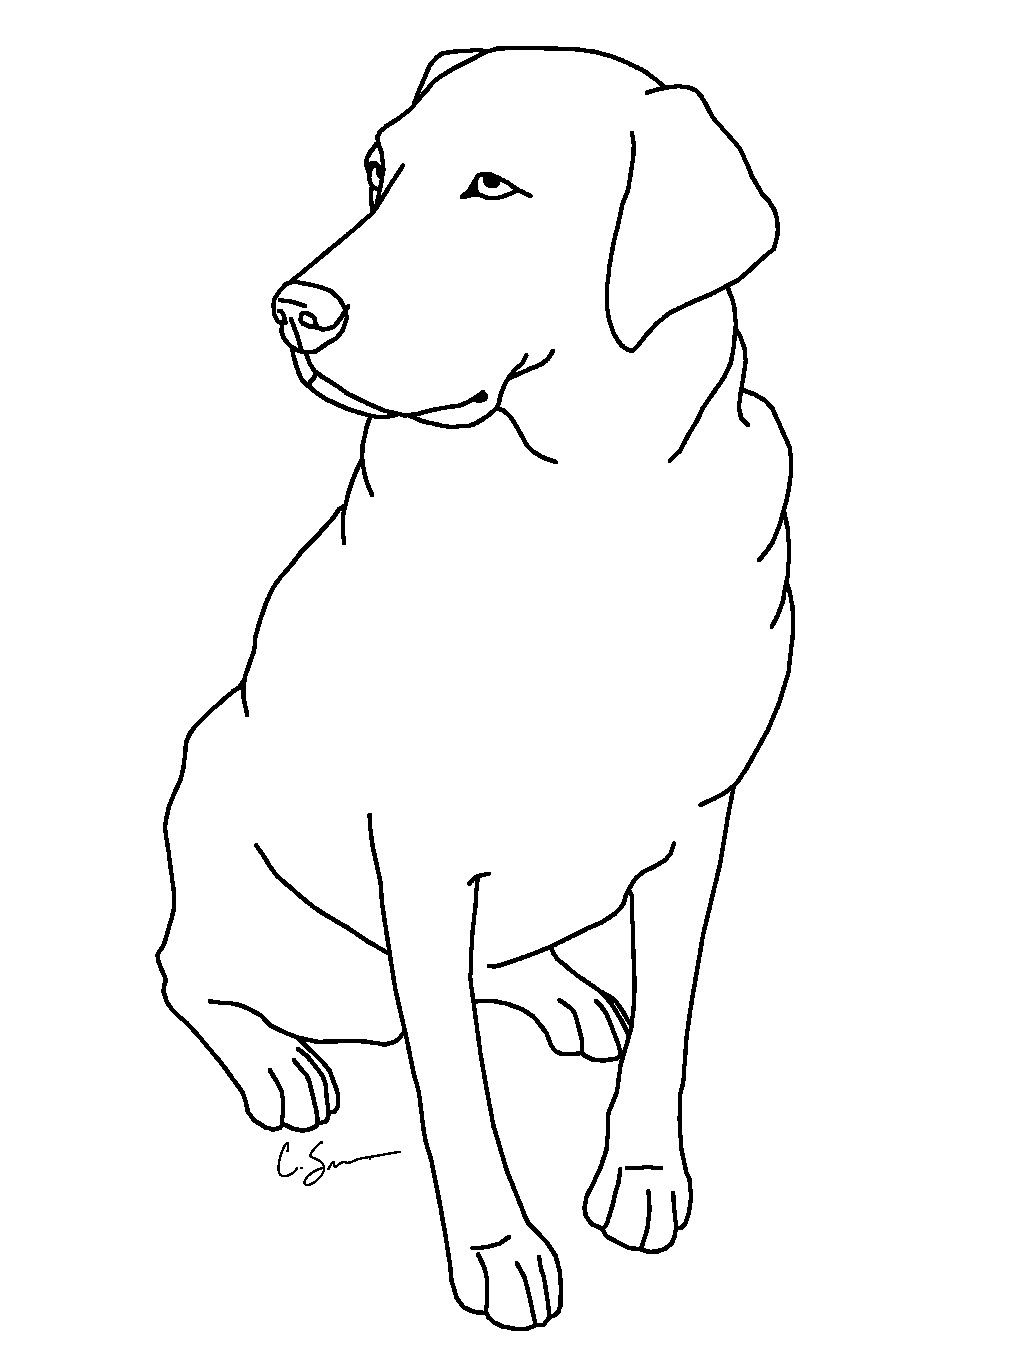 Printable Dog Coloring Pages Ideas For Kids Free Coloring Sheets Dog Coloring Page Puppy Coloring Pages Horse Coloring Pages